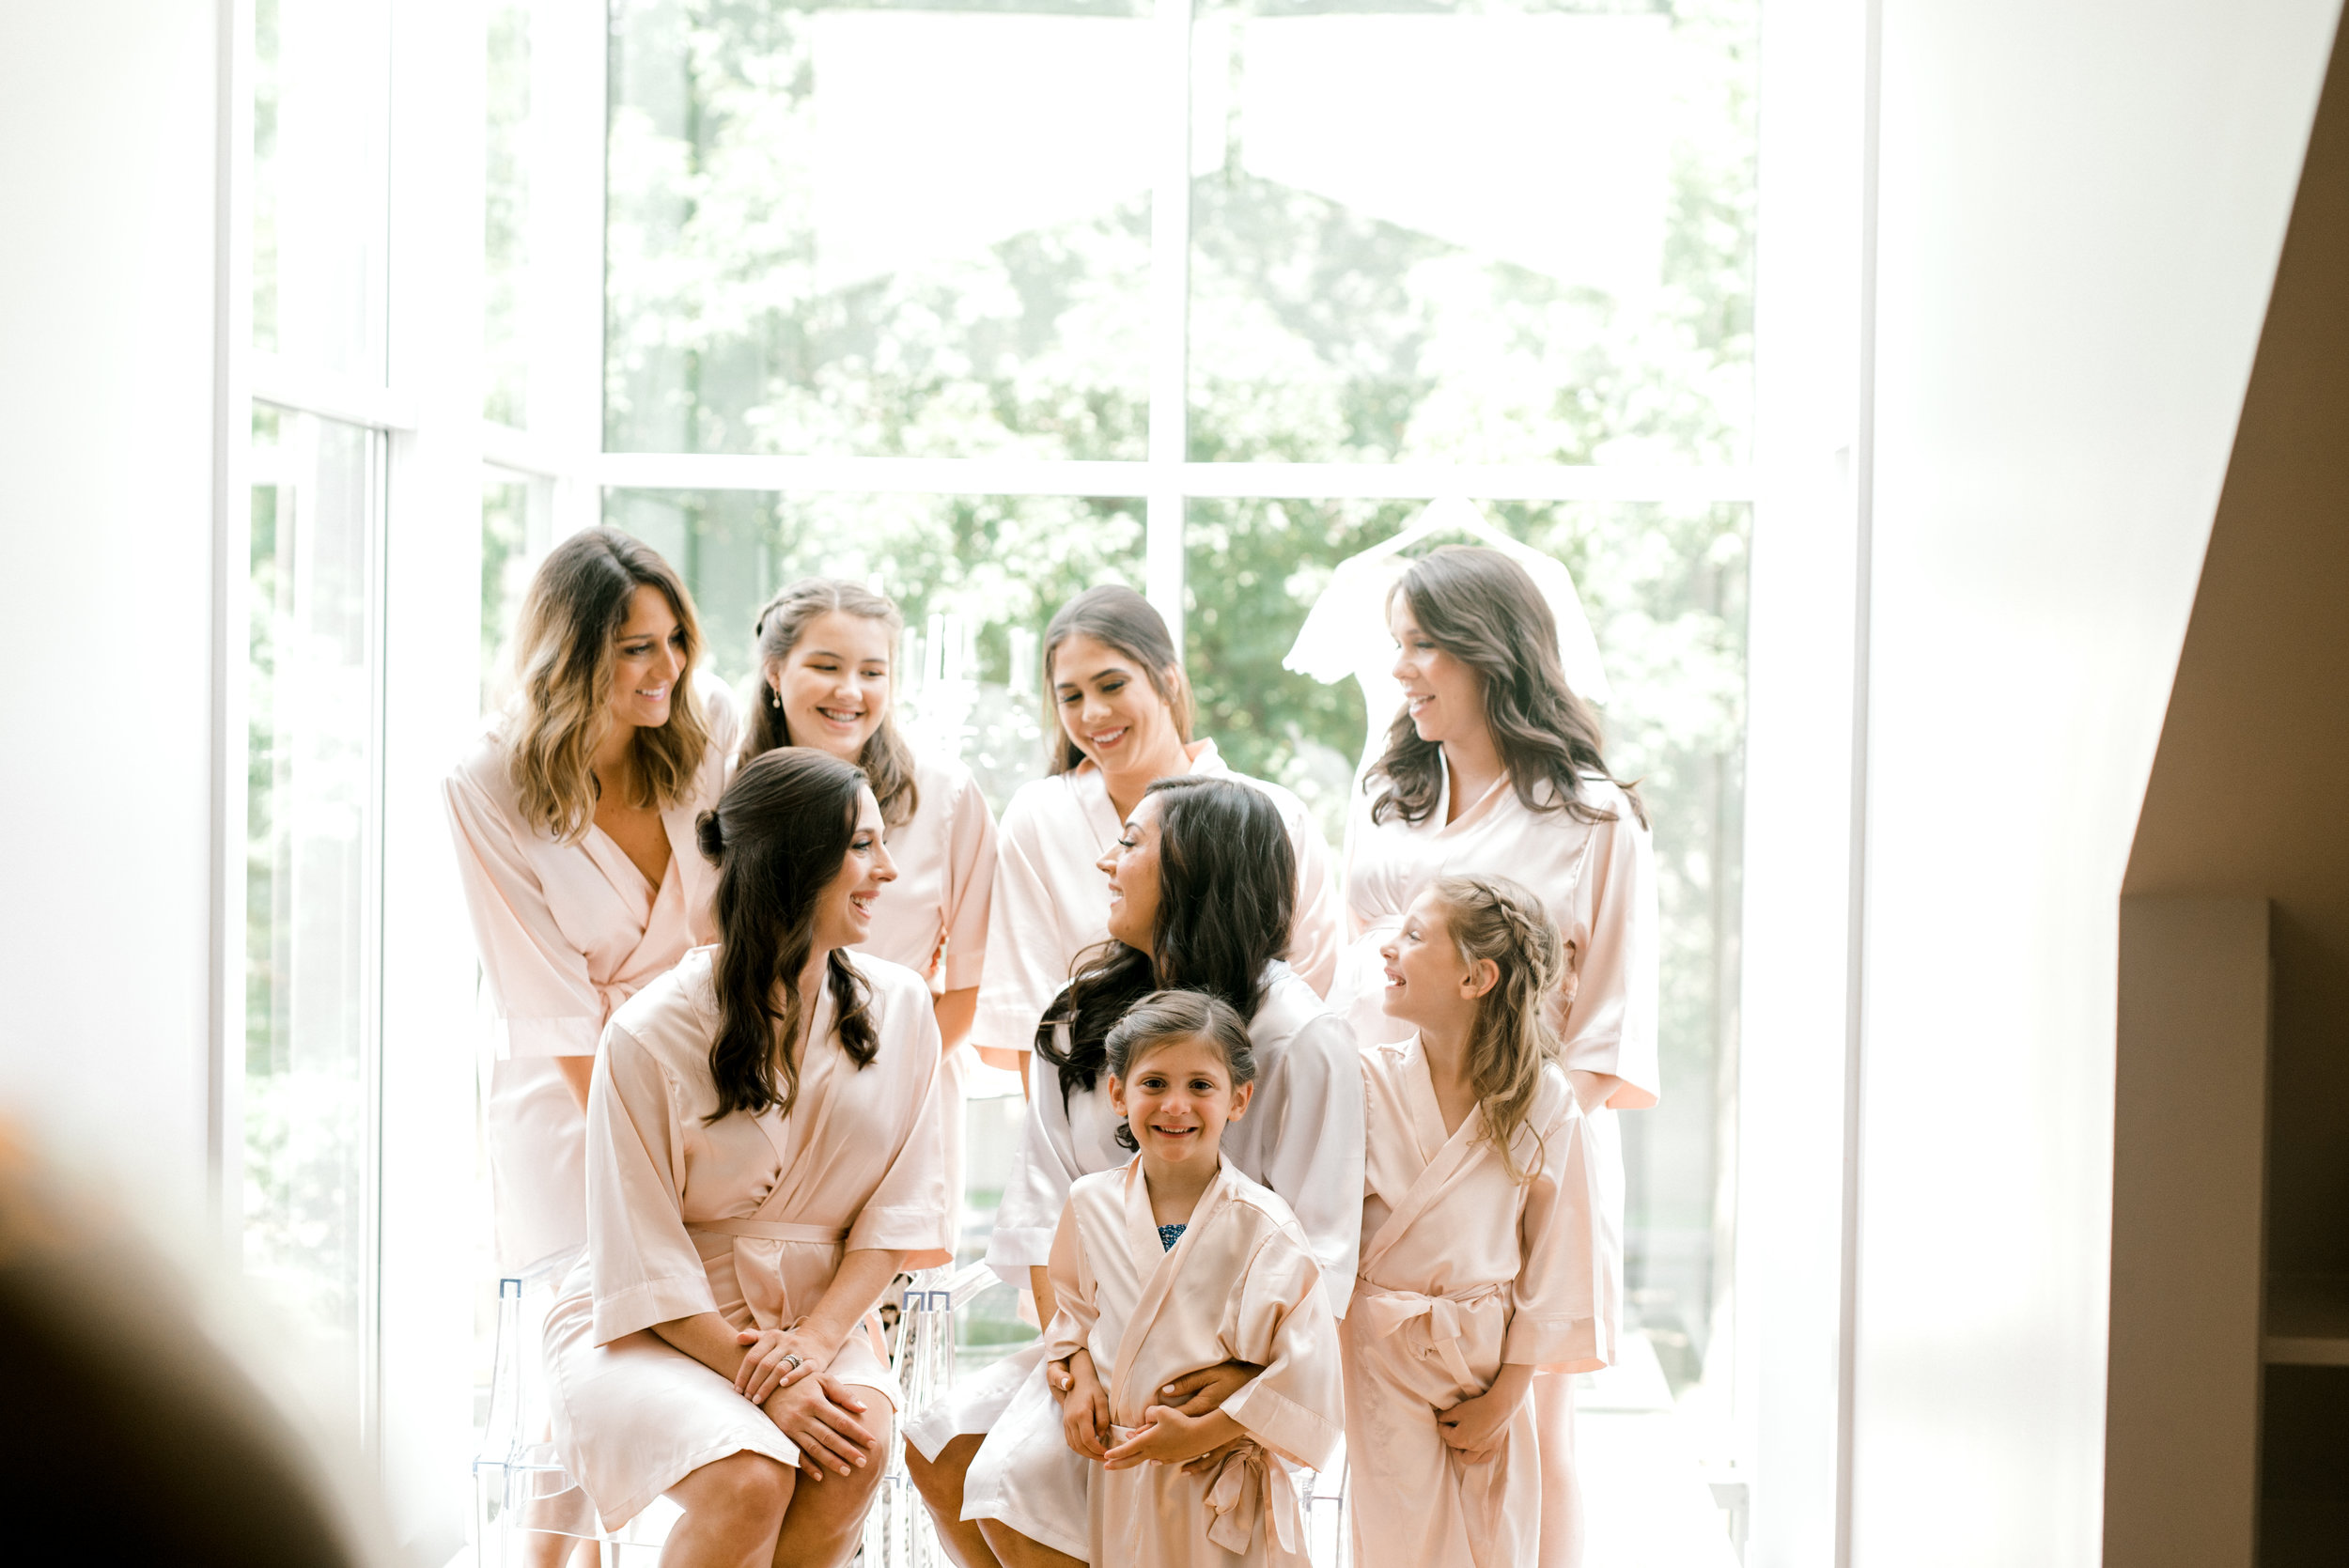 All the girls getting ready in their pink robes before a colorful and modern wedding day at Hotel du Village.